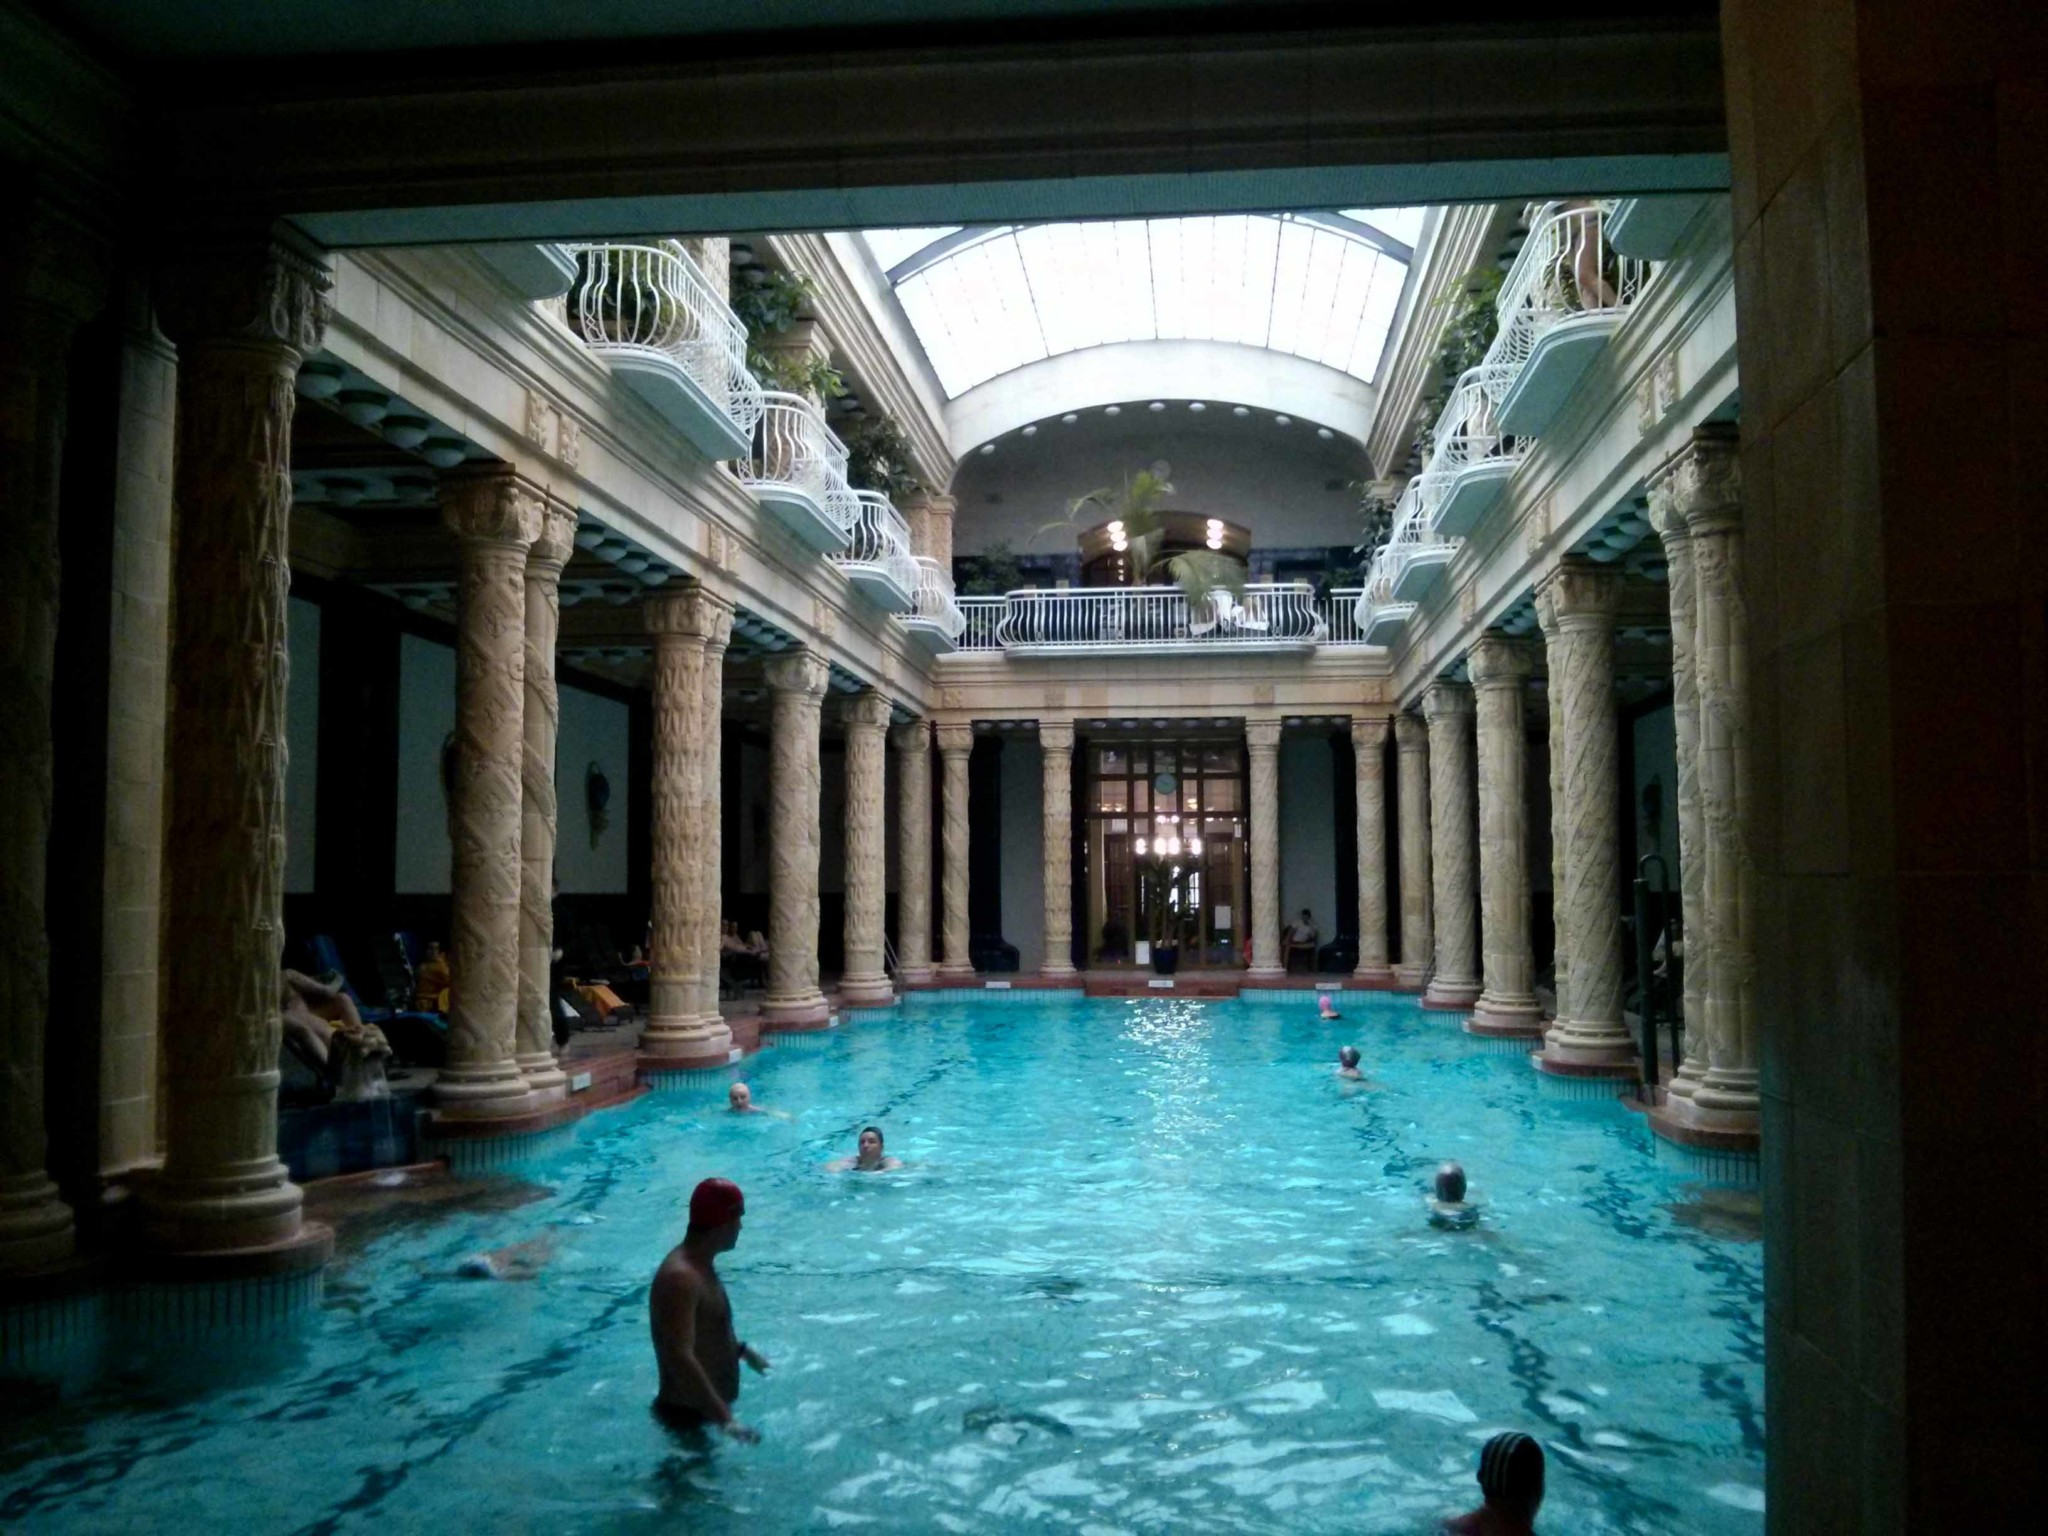 Finding Relaxation at Gellert Baths